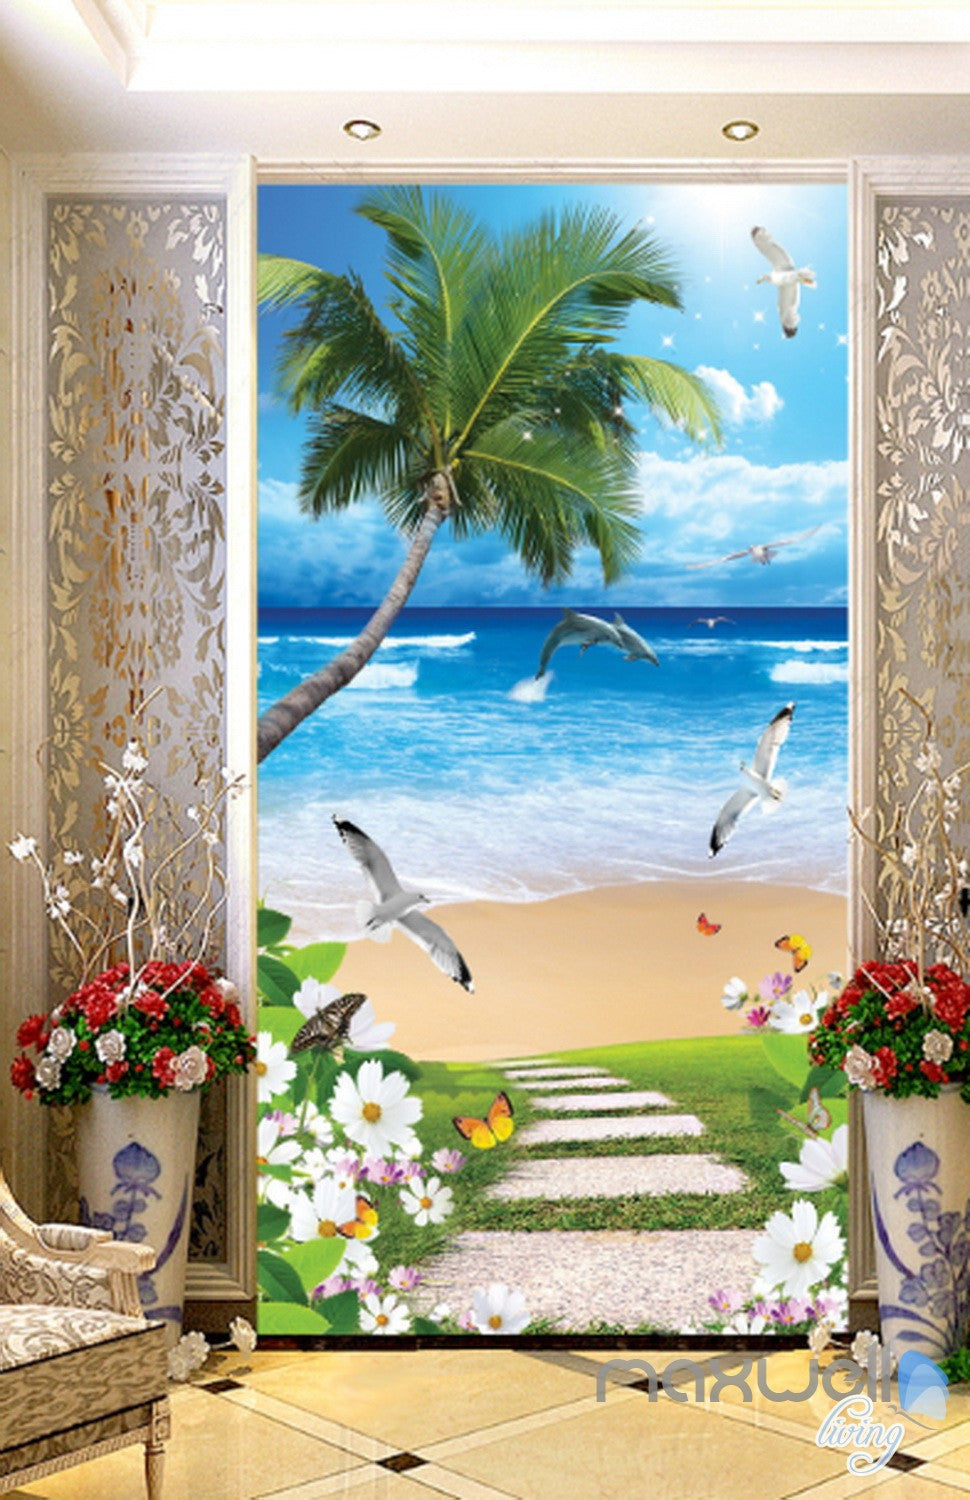 3D Butterfly Flower Palm Tree Beach Corridor Entrance Wall Mural Decals Art  Print Wallpaper 065